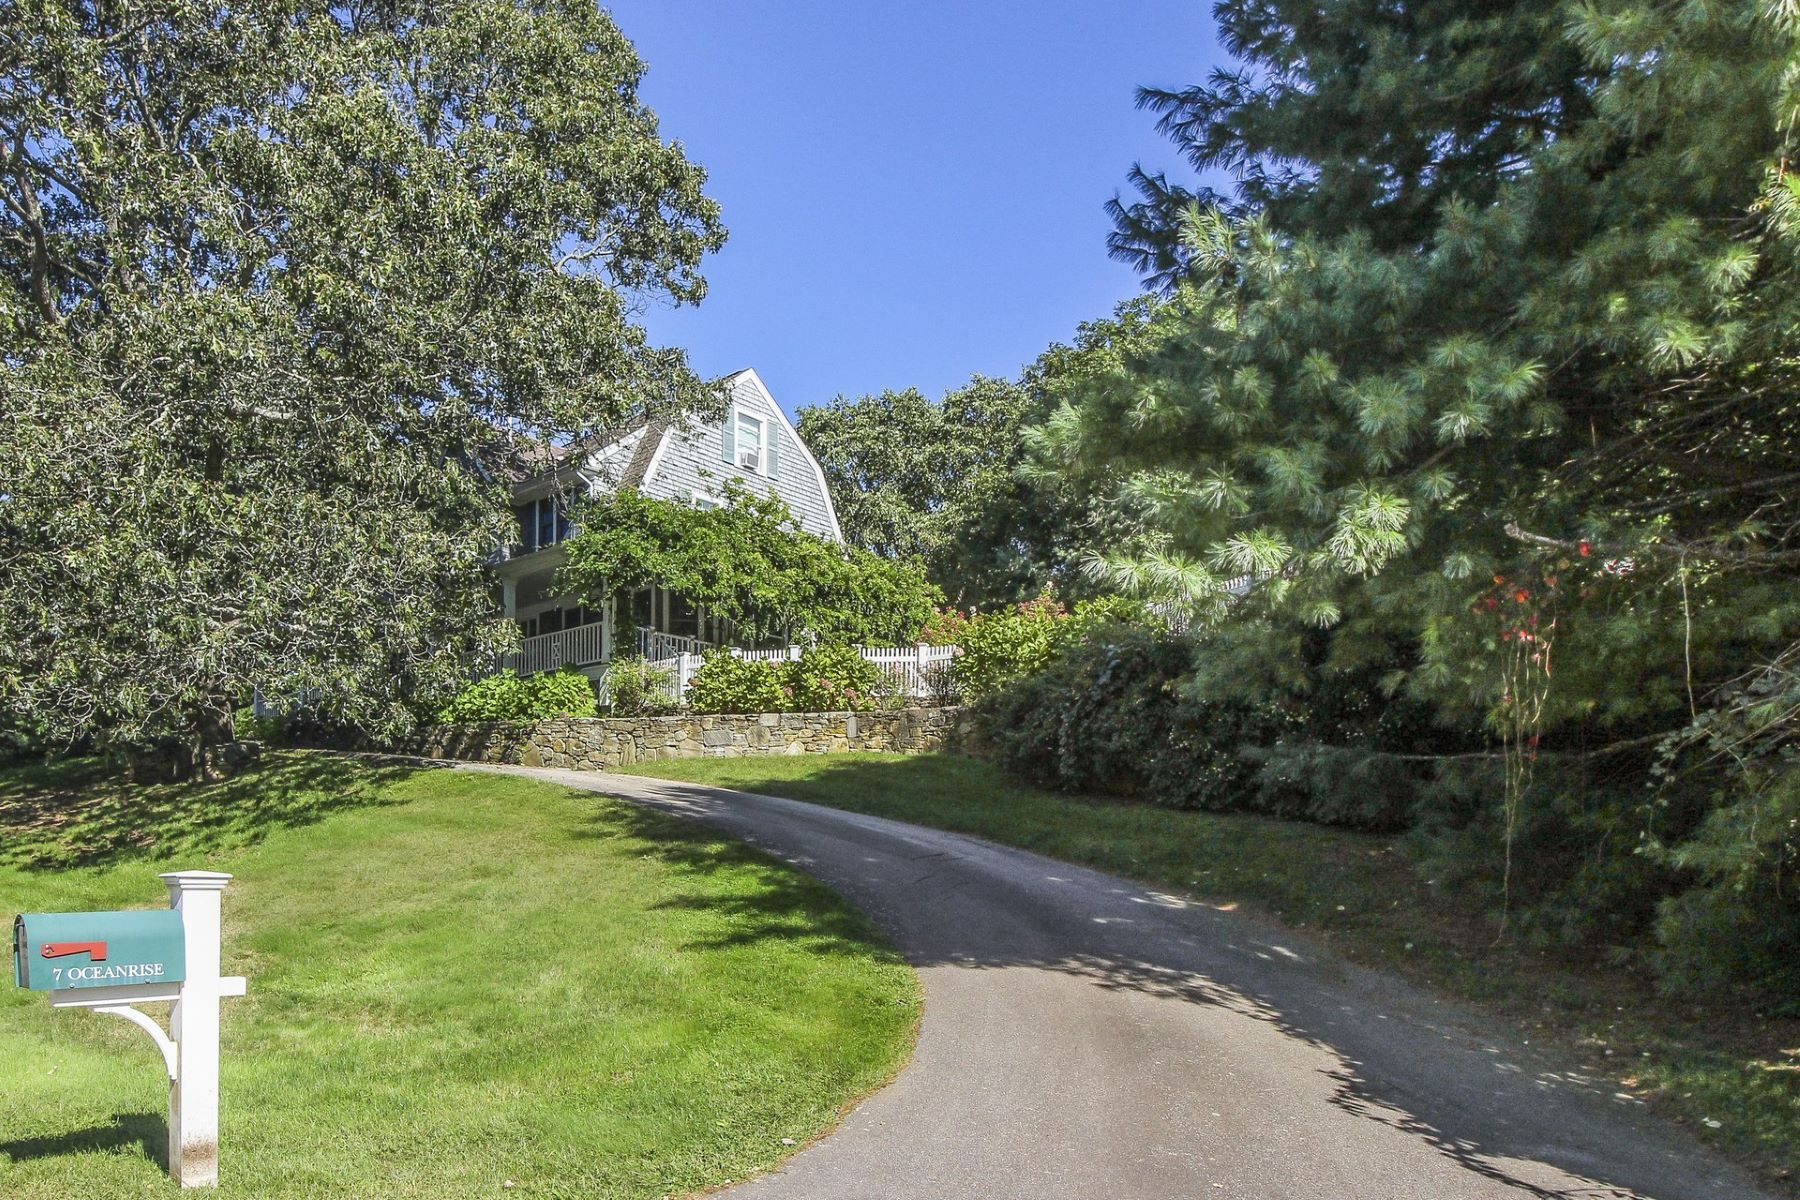 Single Family Homes for Sale at 7 Ocean Rise Drive, Westerly, RI 7 Ocean Rise Drive Westerly, Rhode Island 02891 United States